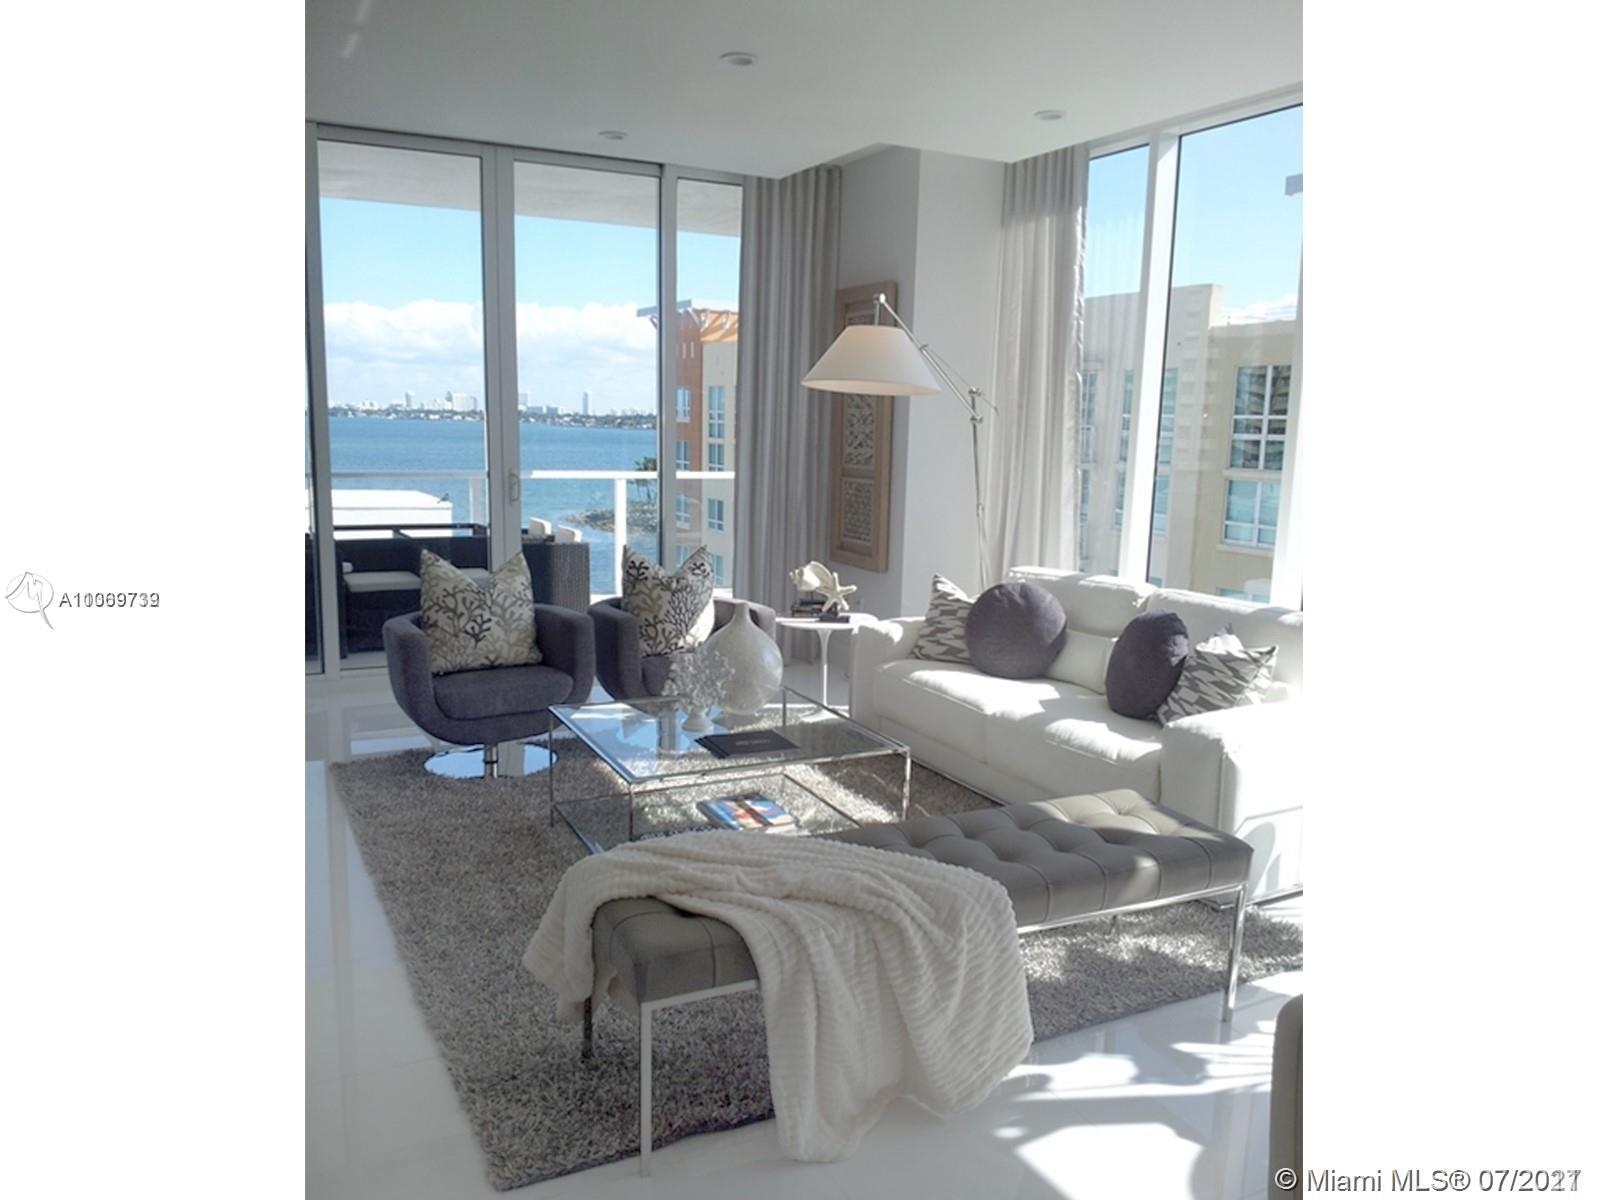 Stunning 3BD/3BA residence at Paramount Bay! 1,818 Sq. Ft. of luxurious living space plus 1,040 Sq.